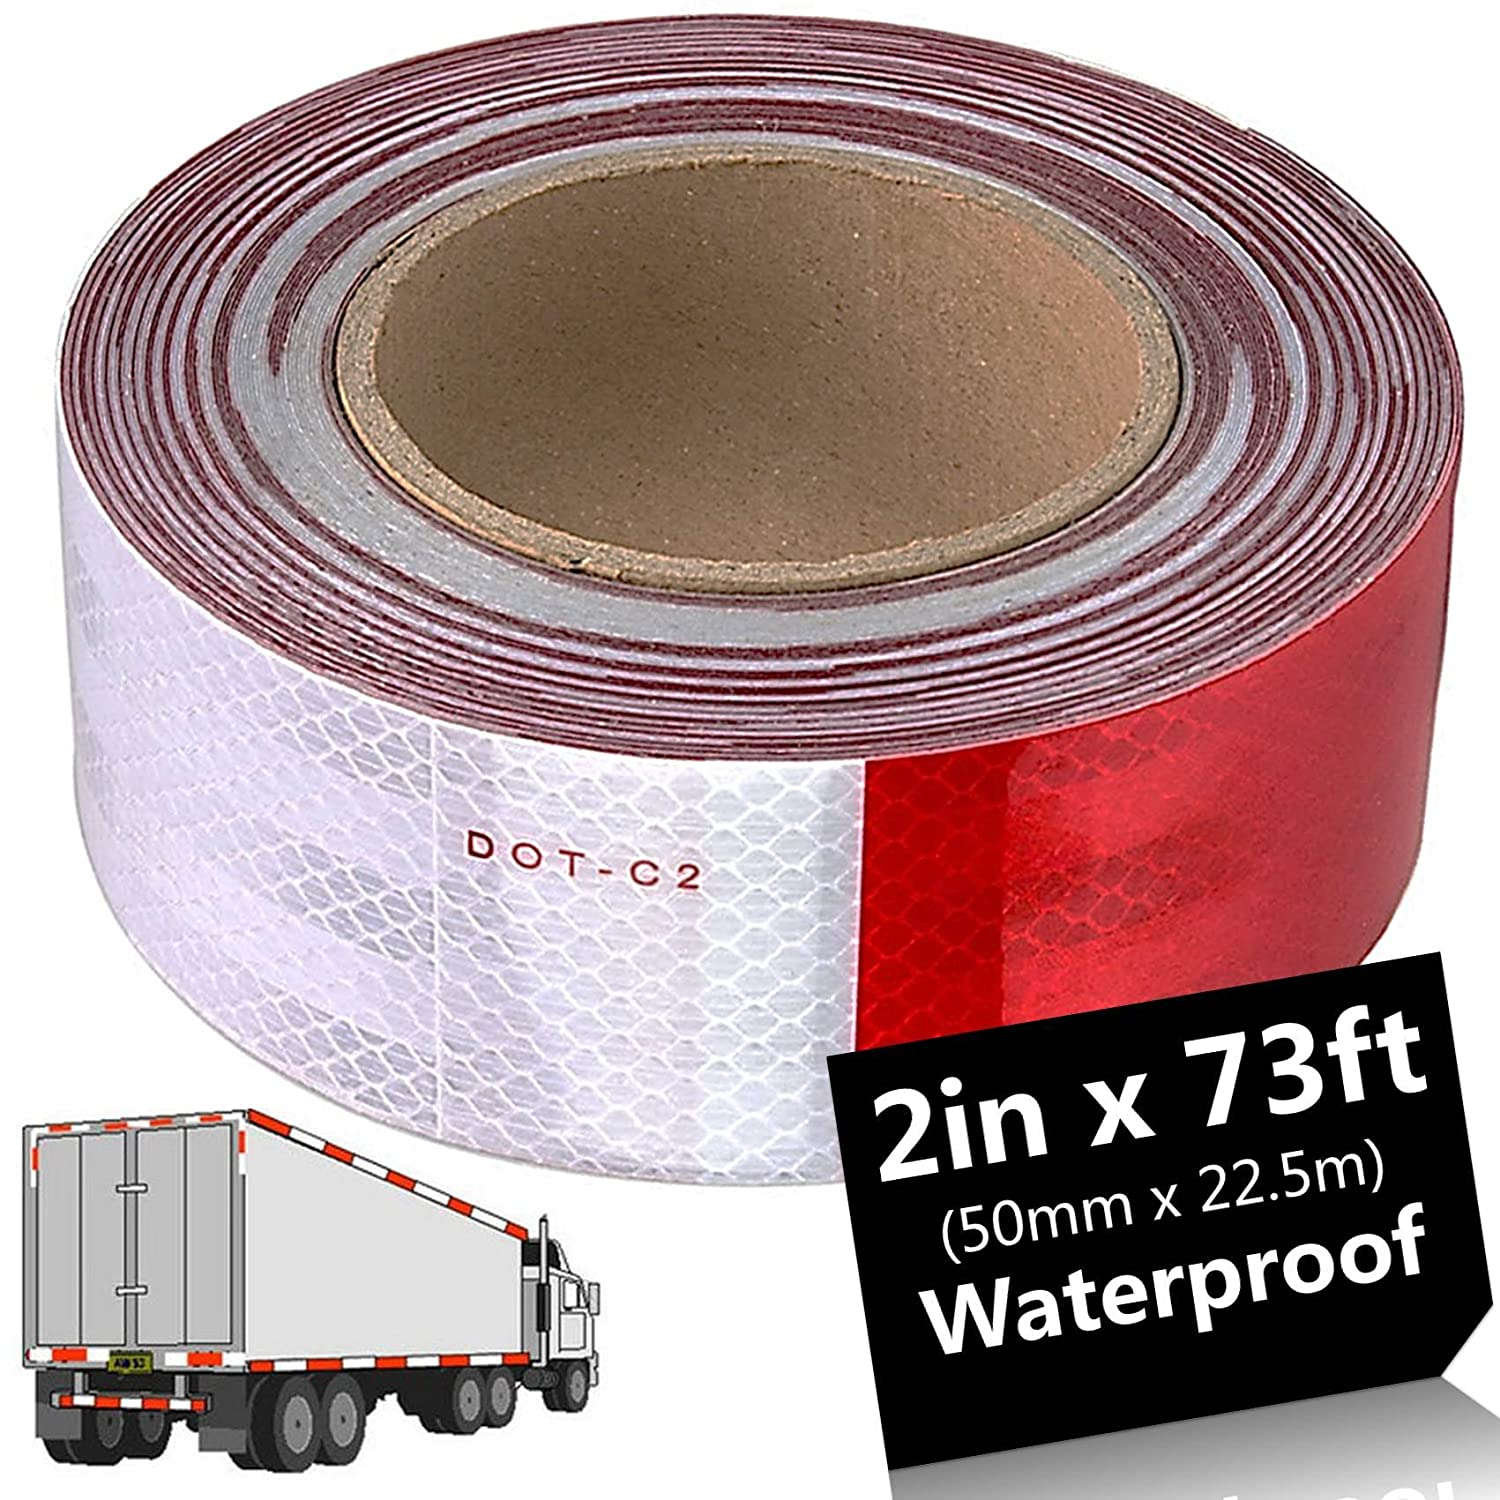 Acrux7 Reflective Tape For Trailers, DOT-C2 Retroreflective Sheeting Pattern: Alternating White and Red Color Segments, 50mm x 73ft, Waterproof Adhesive, For Truck, Garage Door, Parking Lot, Driveway